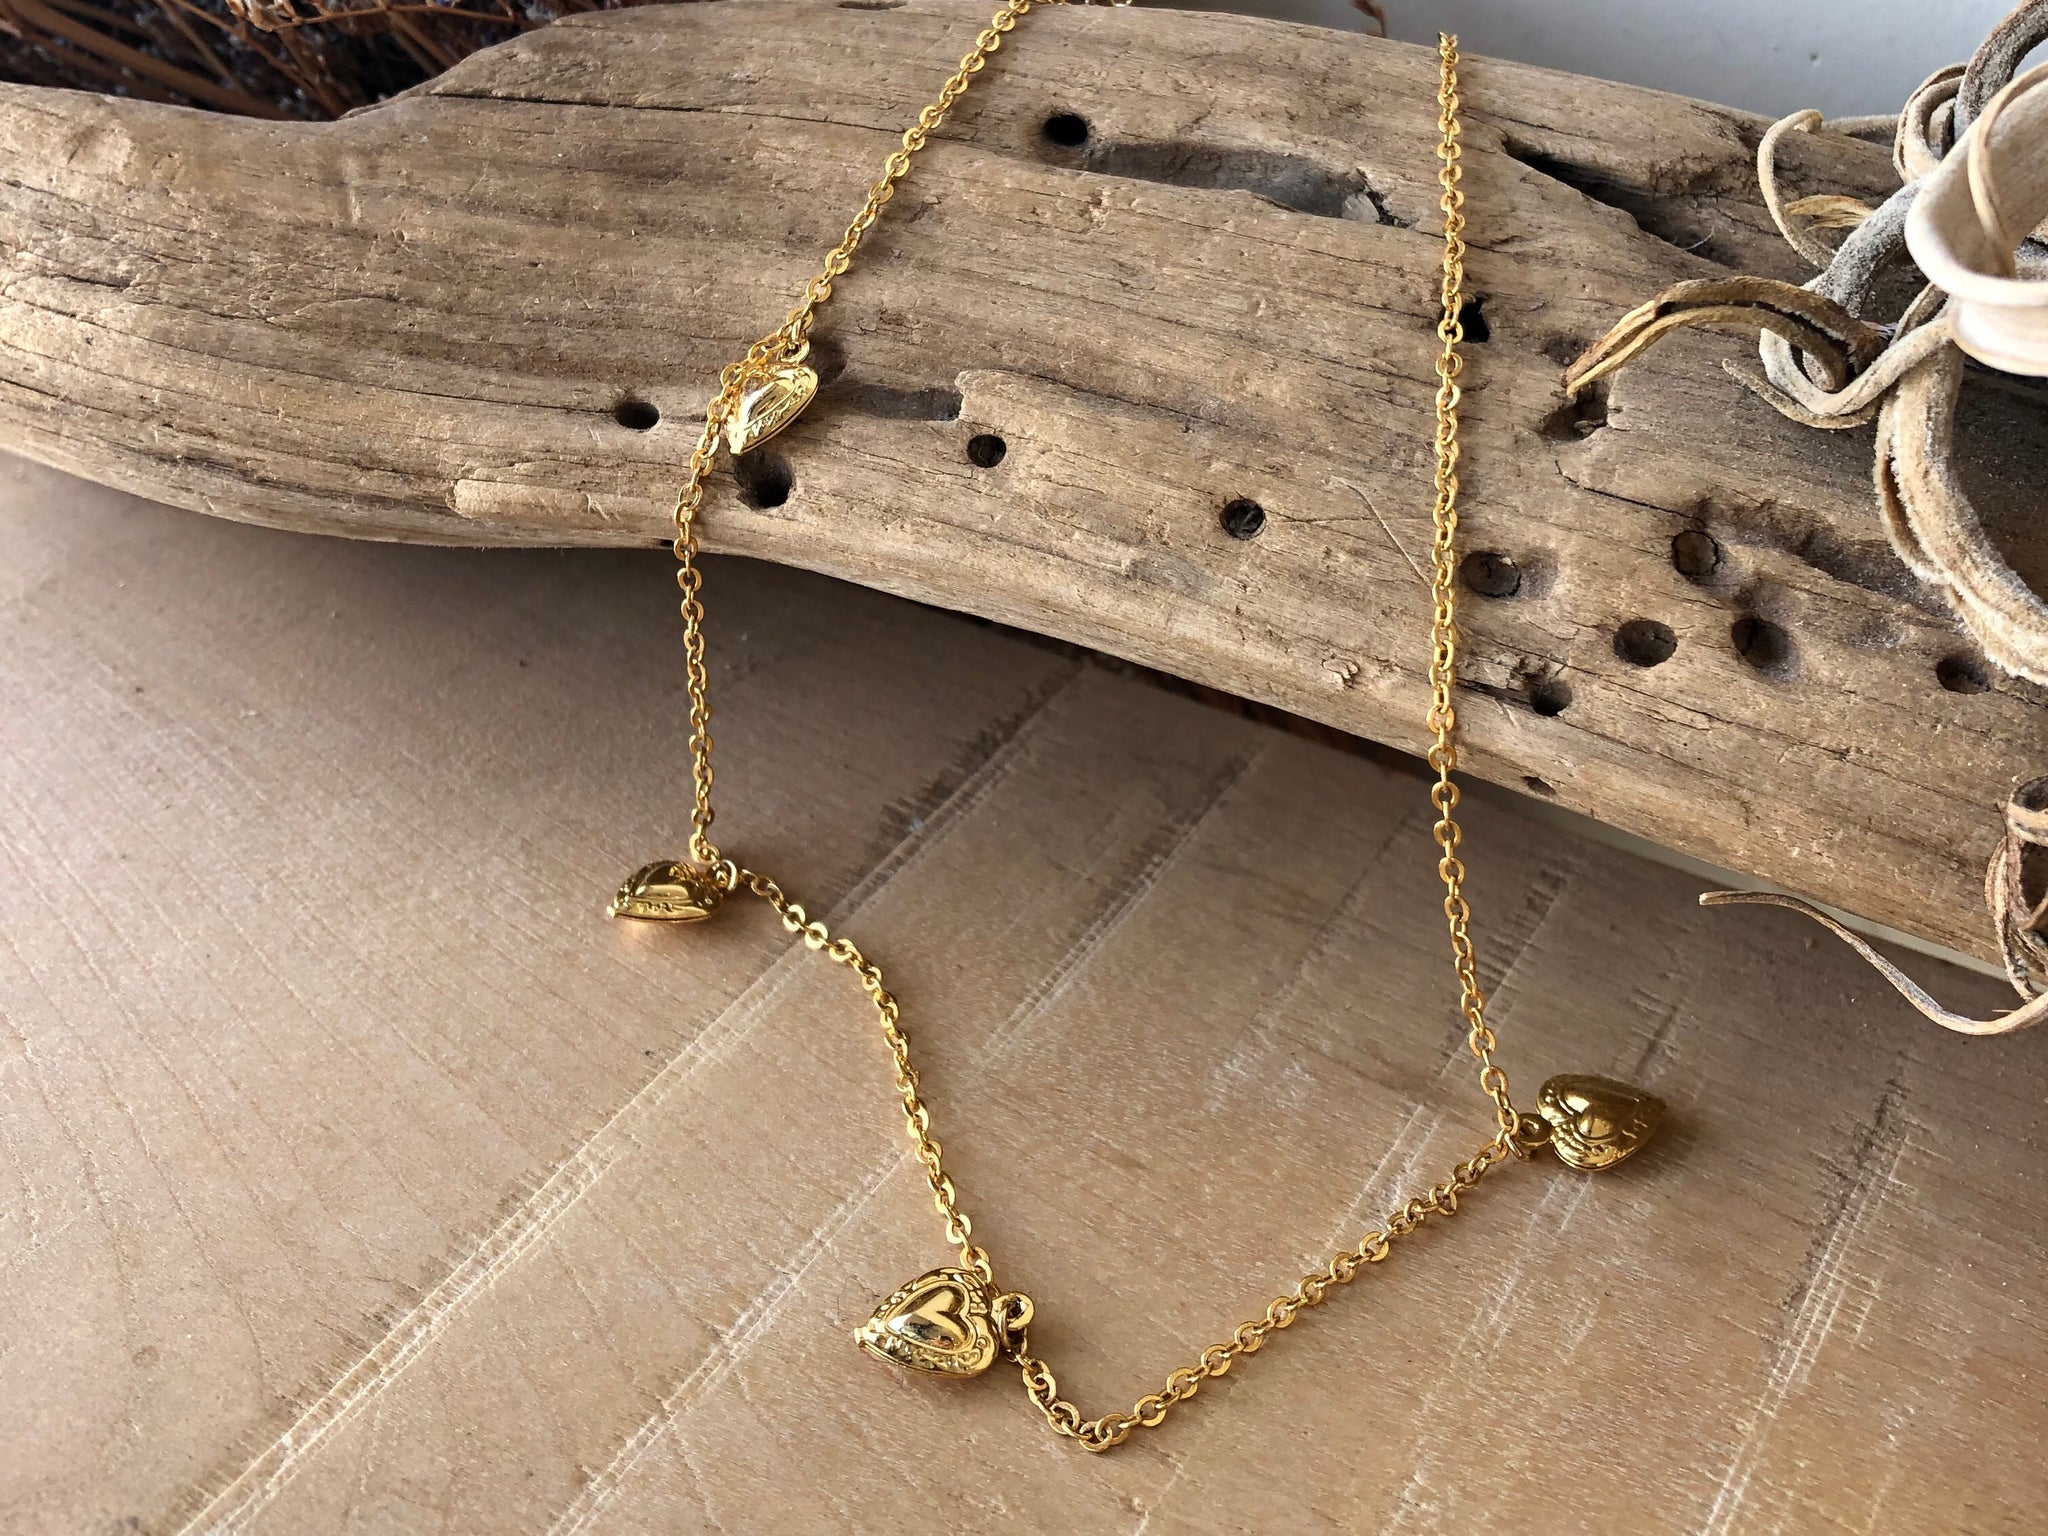 tiny heart necklace, gold necklace, goldchoker, goldchain, heart necklace, heart chain necklace, heart gold chain, heart jewelry, love jewelry, gift necklace